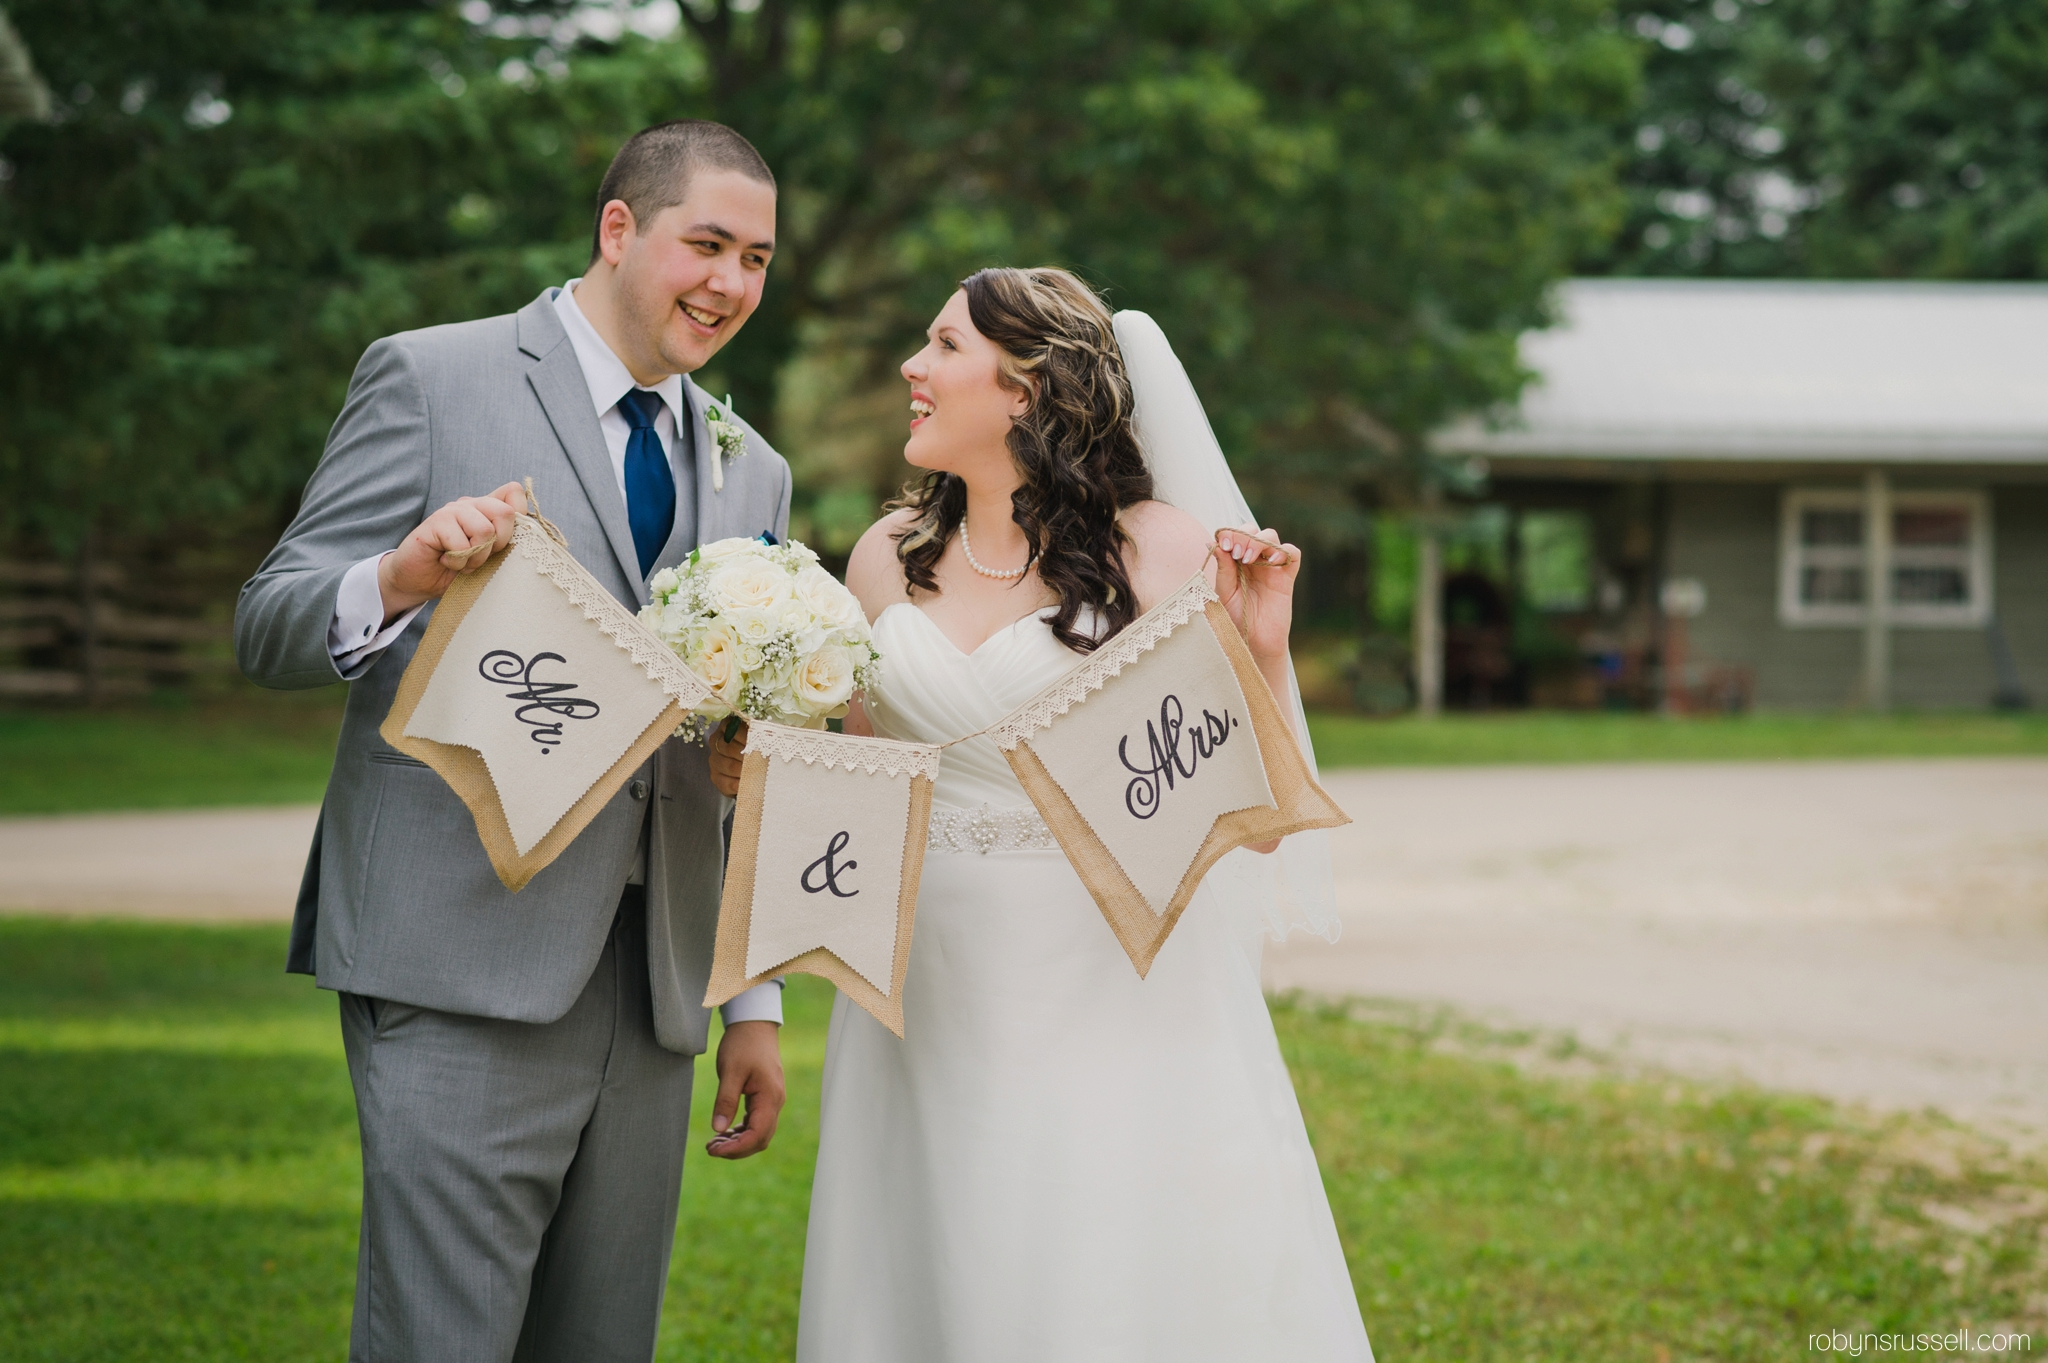 45-mr-and-mrs-sign-bride-and-groom-drysdale-wedding-photographer.jpg